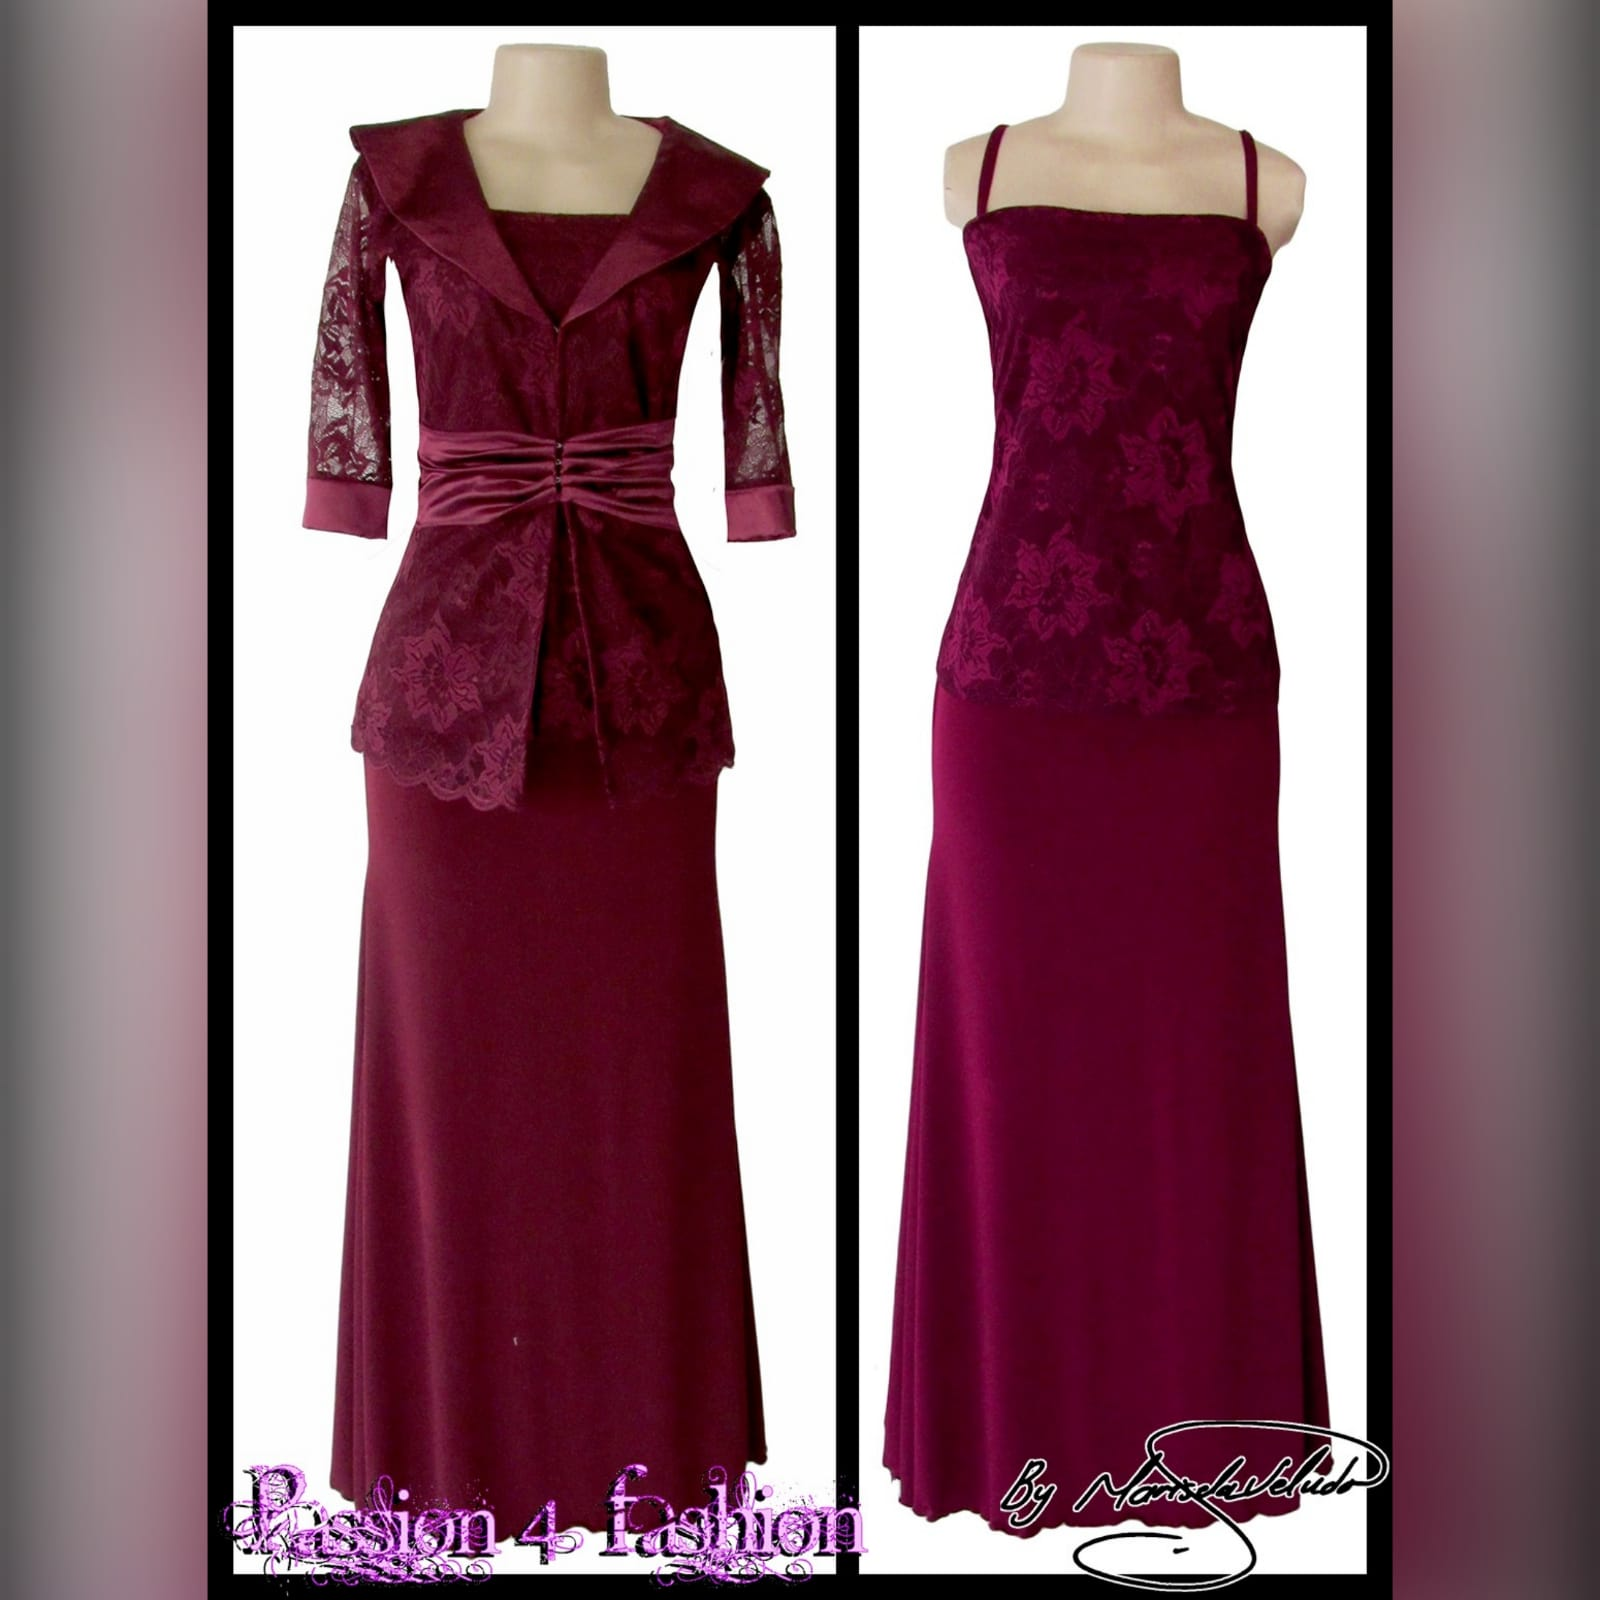 Burgundy 3 piece mother of the bride outfit 4 burgundy 3 piece mother of the bride outfit. With a lace top and a removable lace jacket with collar, ruched belt and sheer 3/4 sleeves with a cuff.